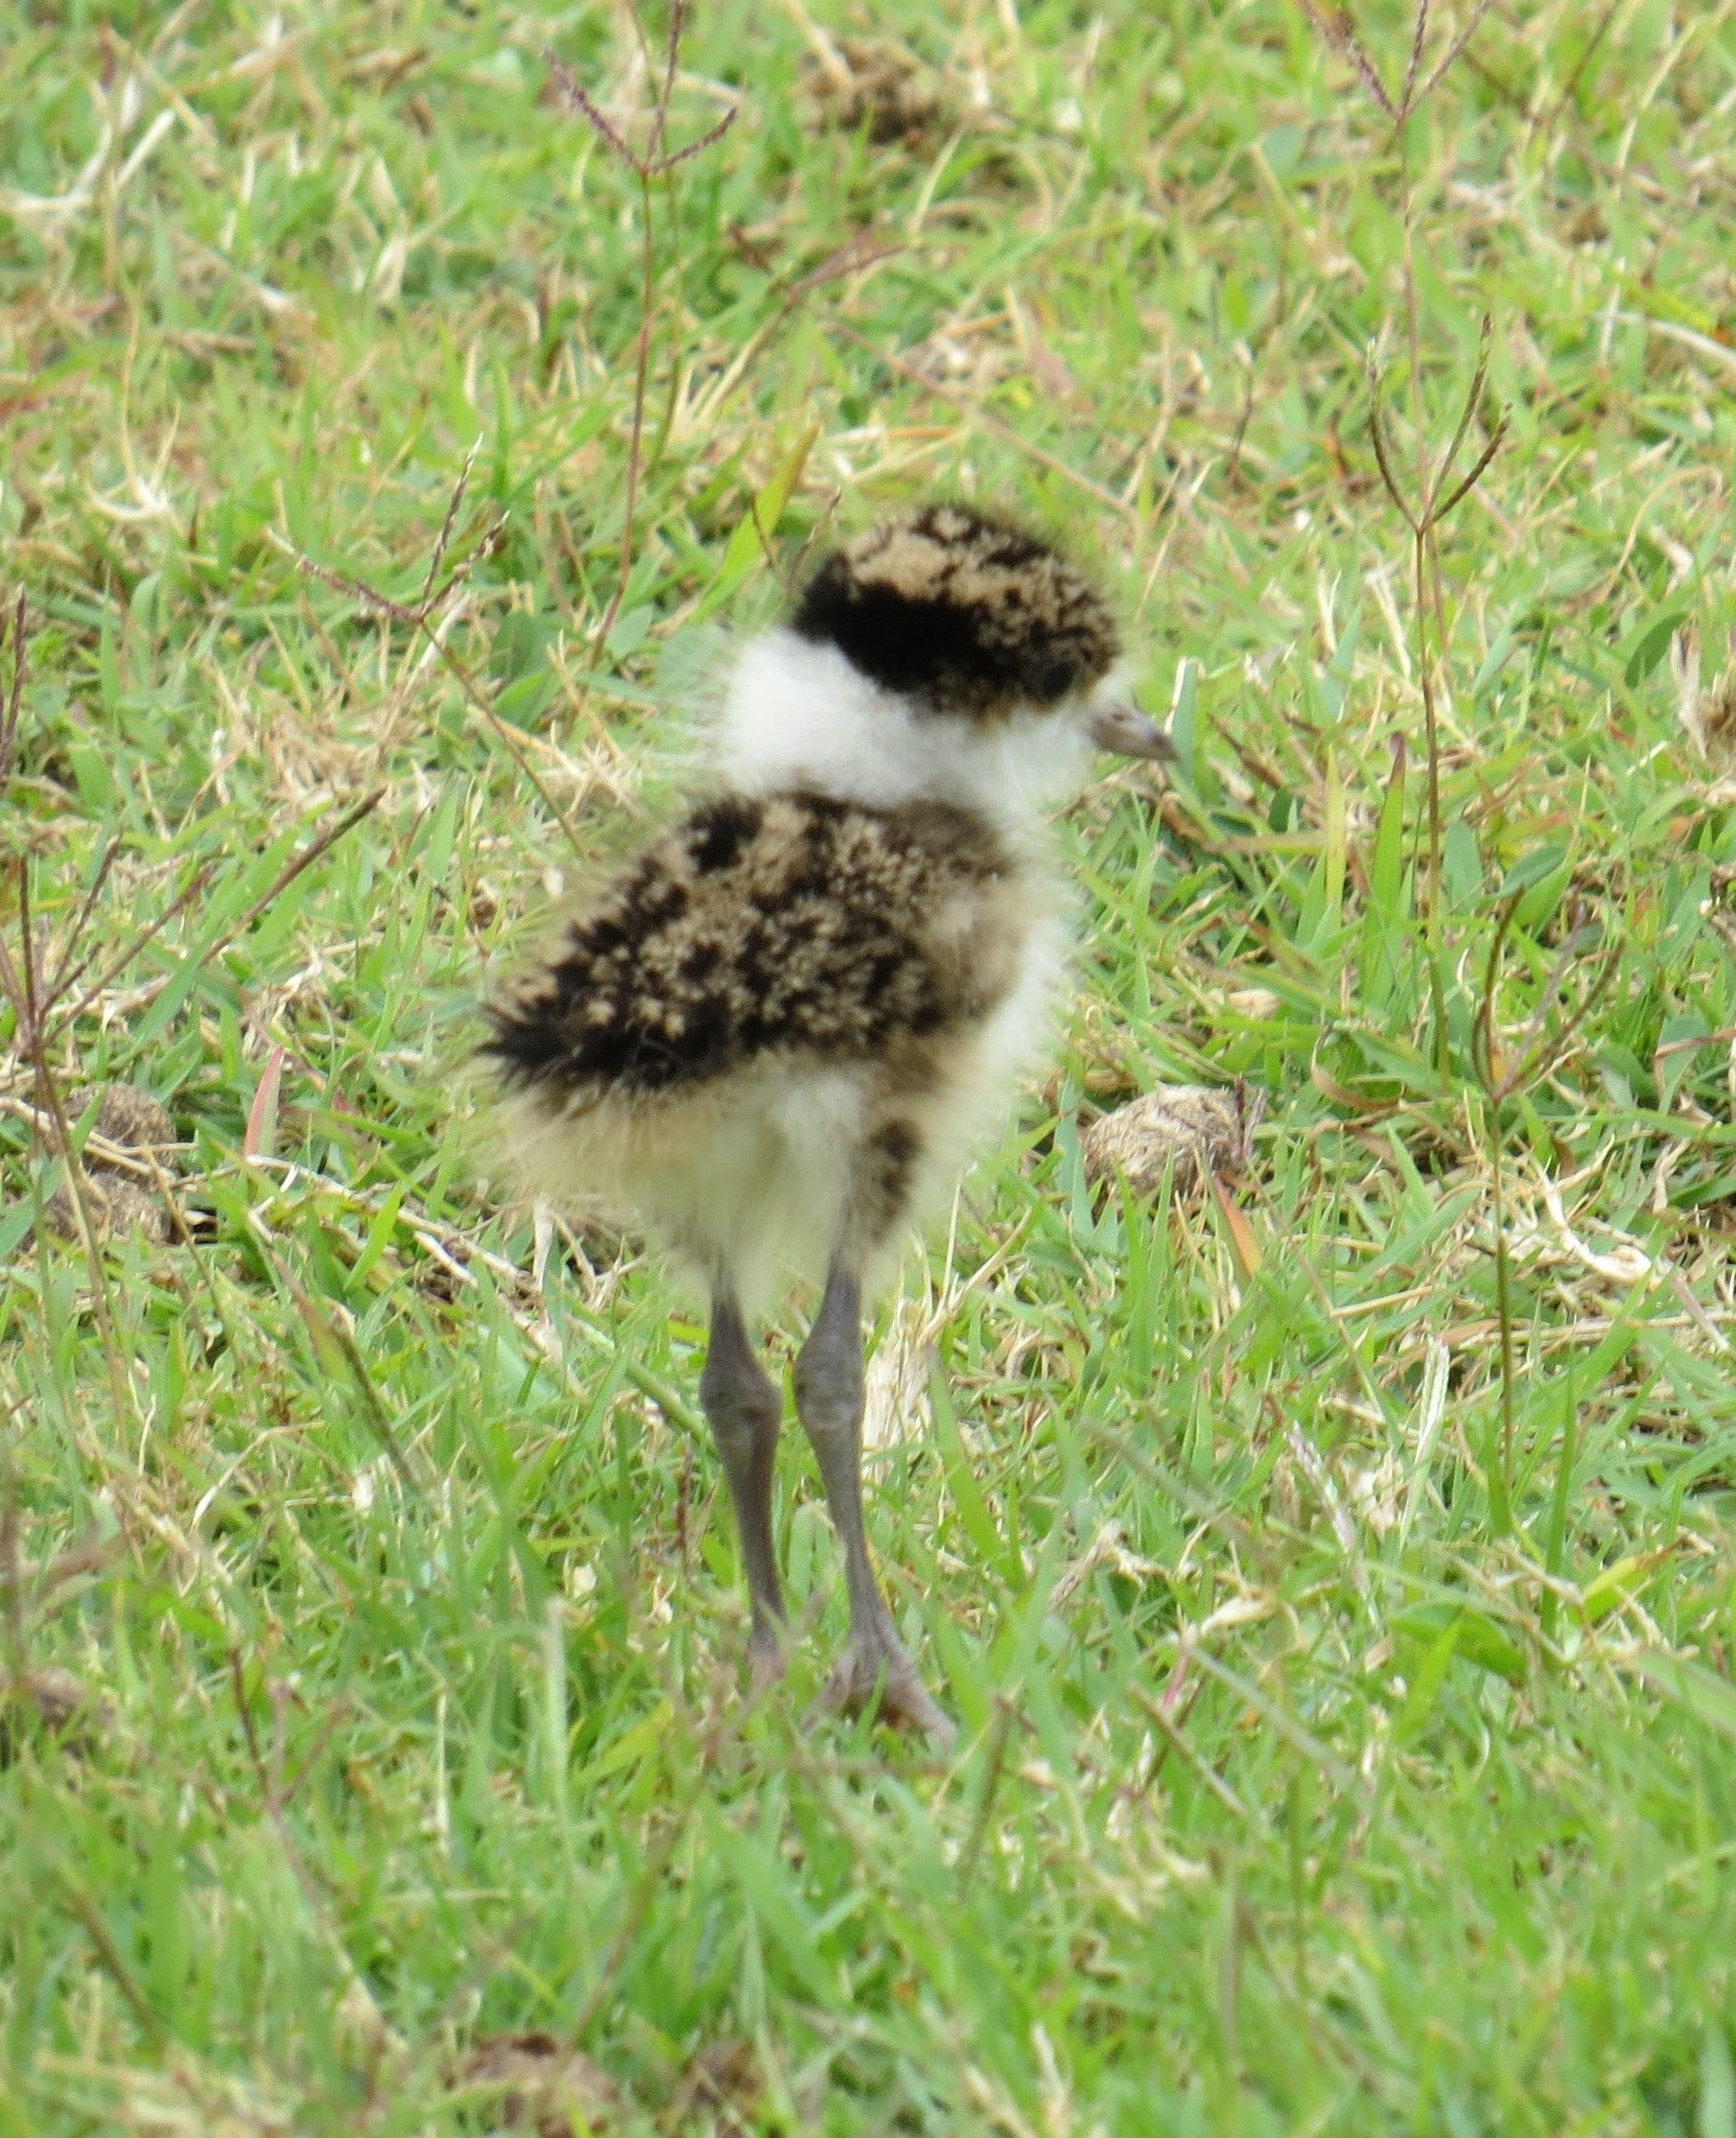 Ball of fluff on legs (Baby Plover) http://ift.tt/2fyo913